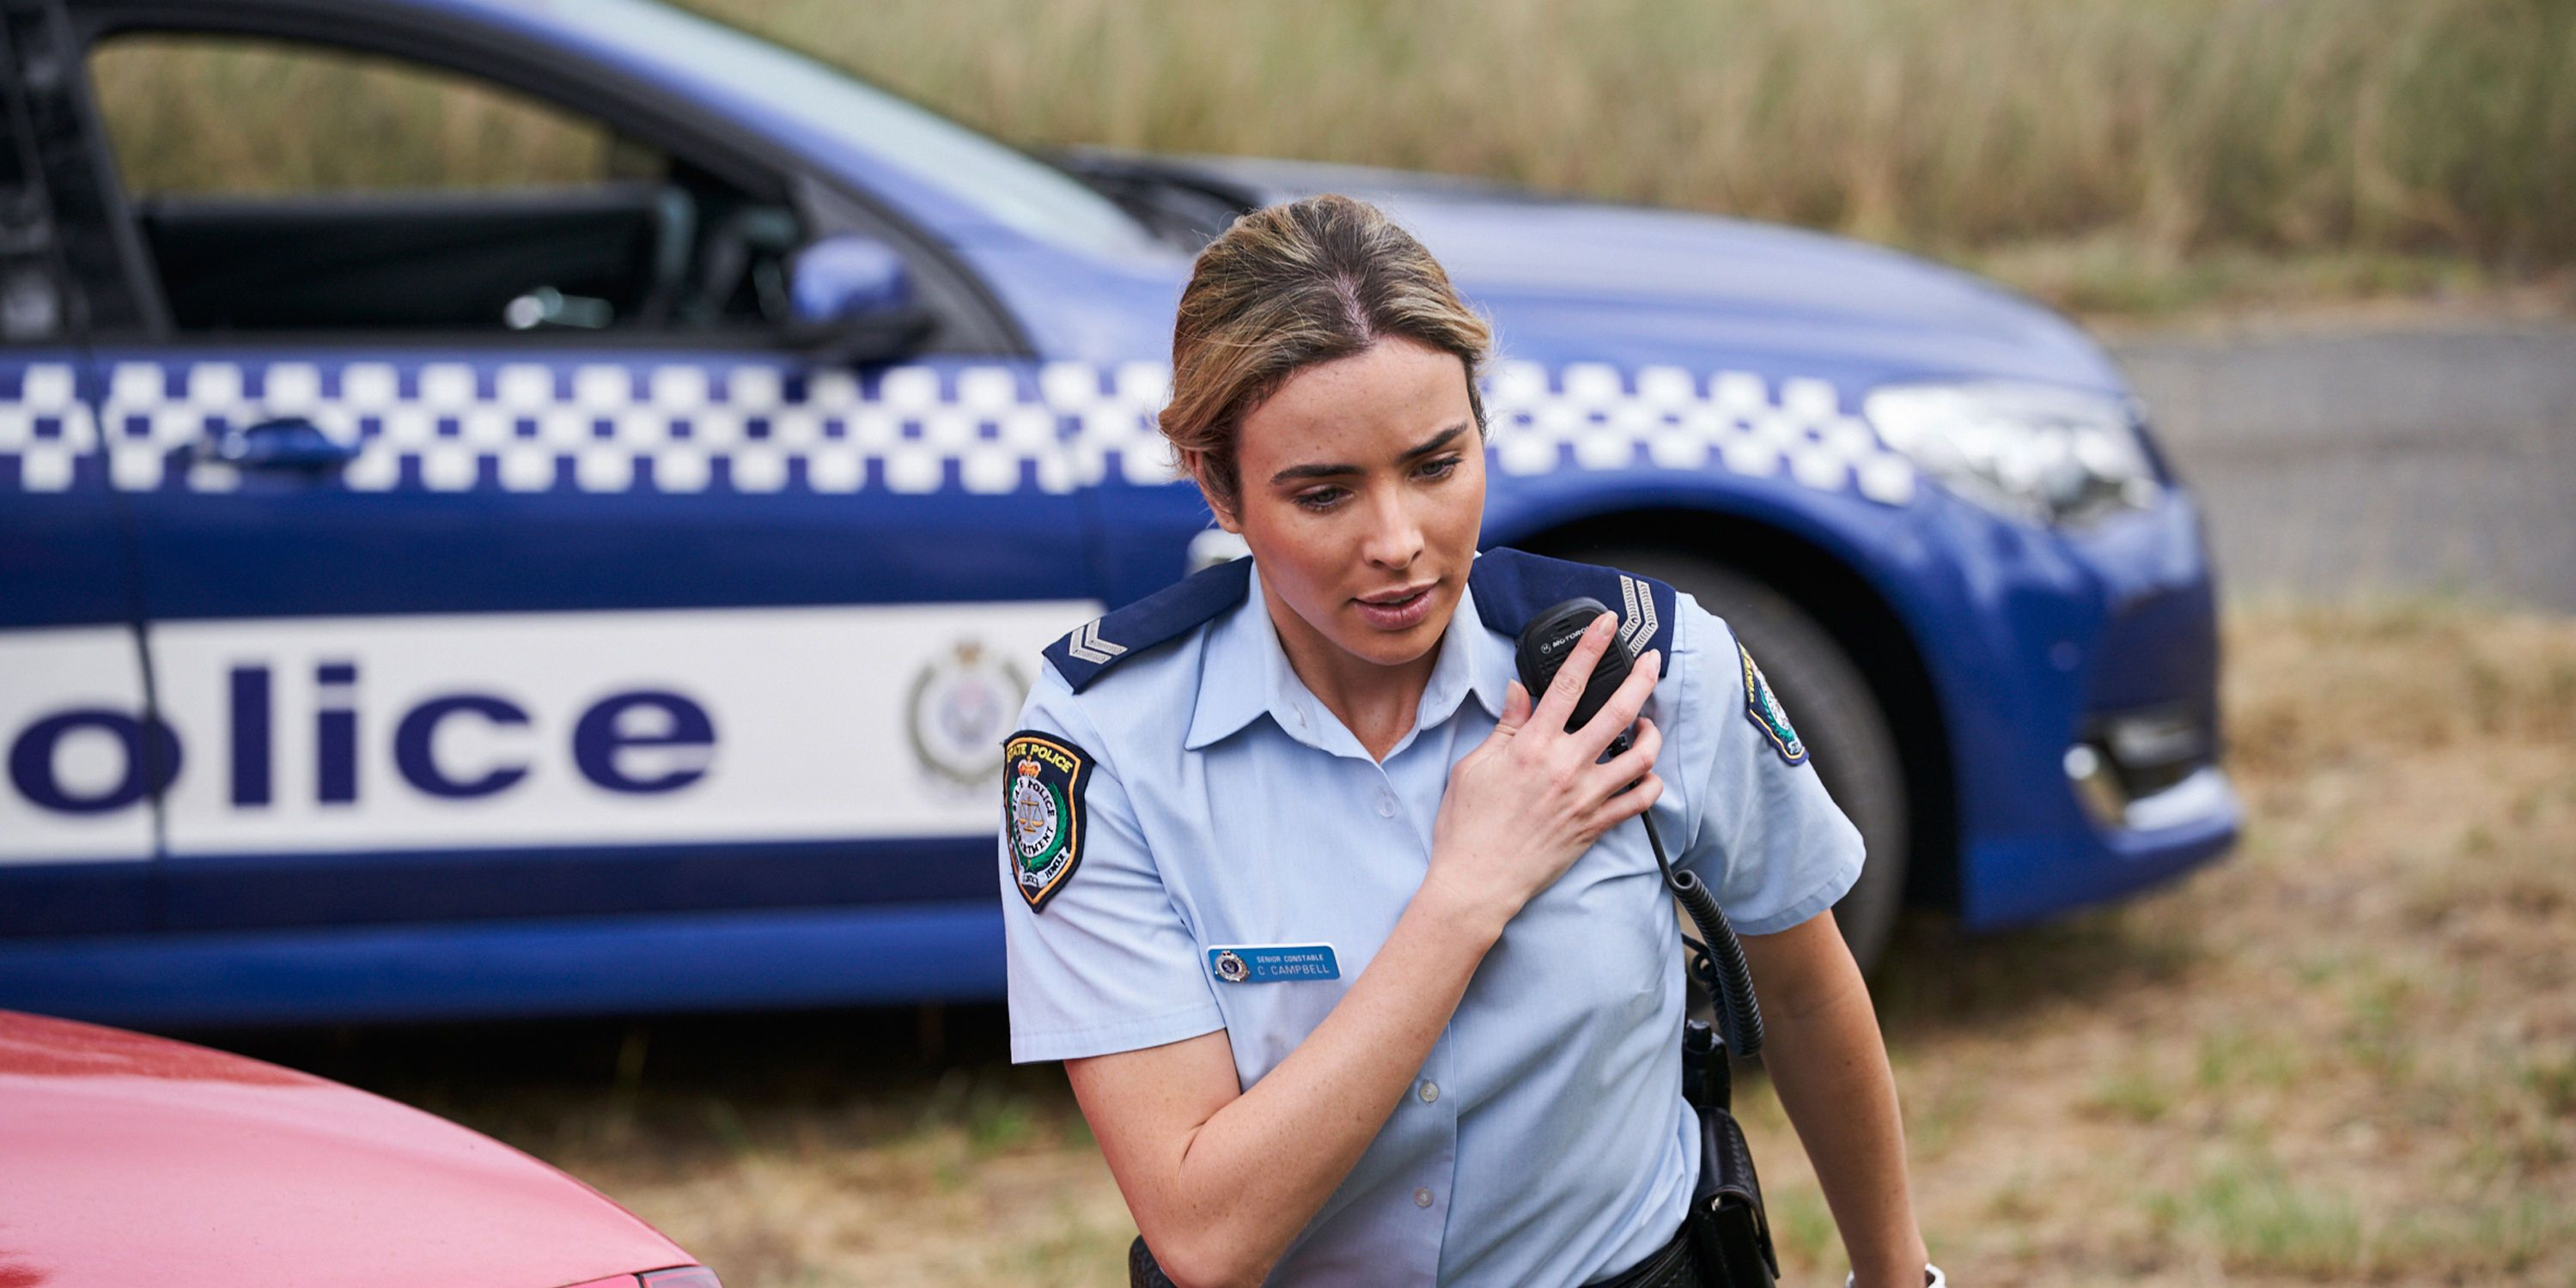 Chelsea Campbell, Colby Thorne, Dean Thompson, Ryder Jackson and Coco Astoni team up to rescue Raffy Morrison in Home and Away